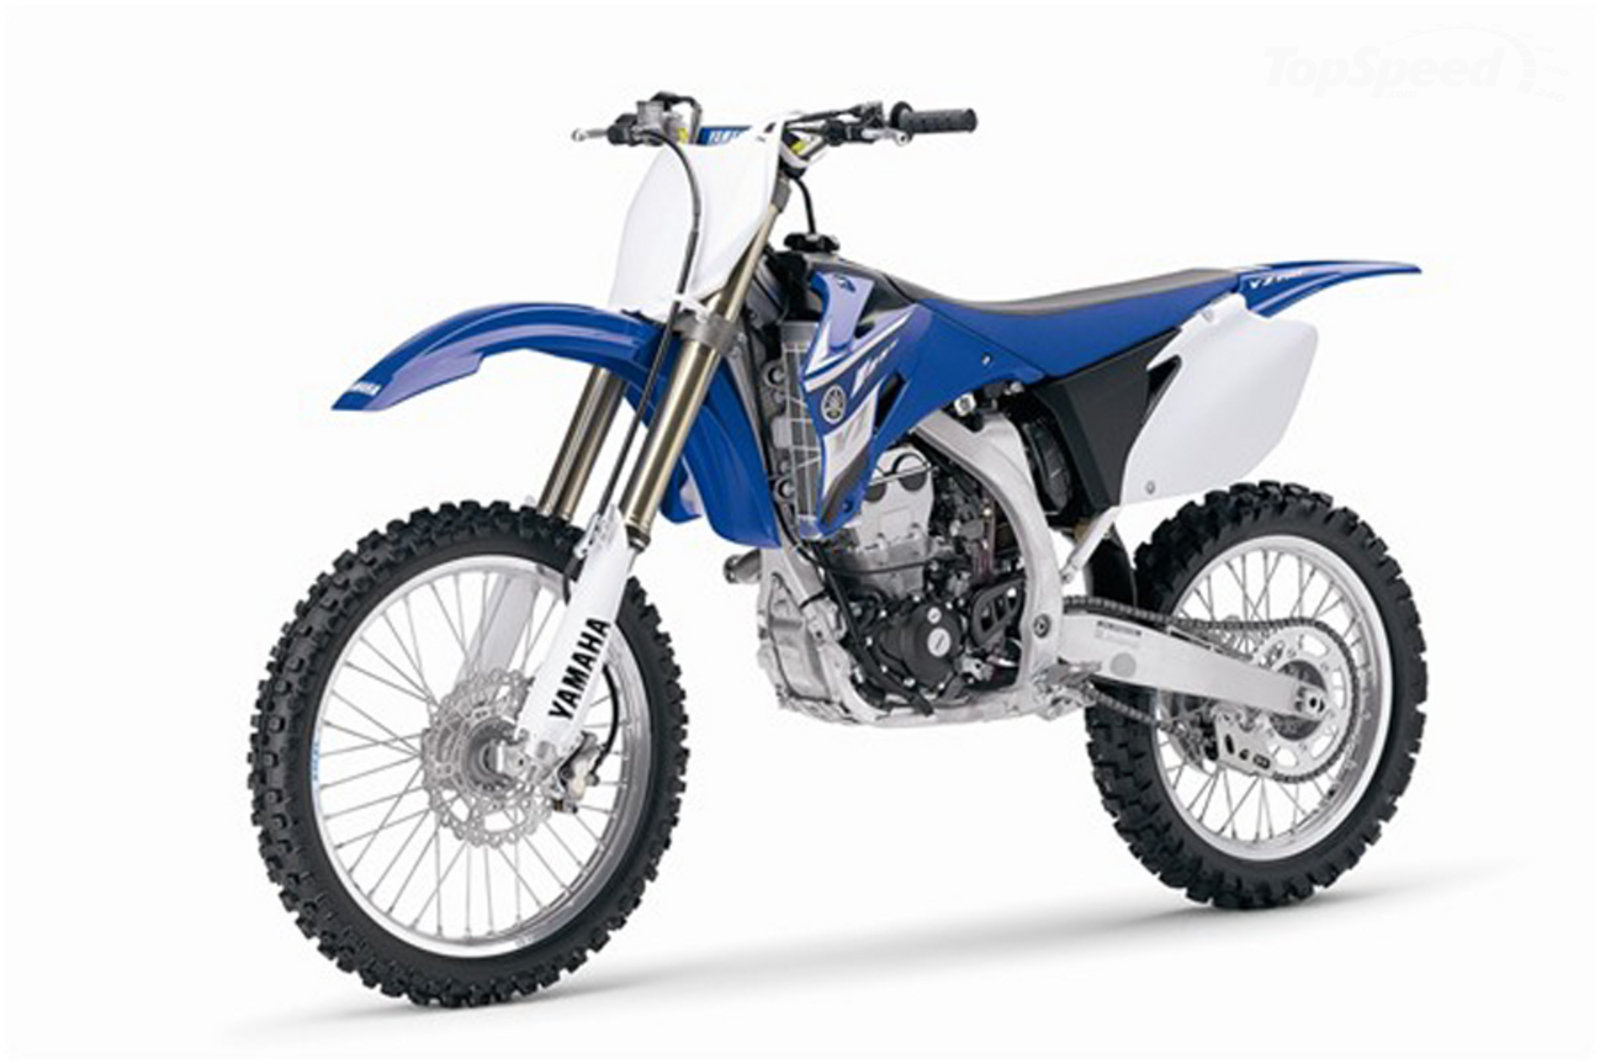 2008 yamaha yz250f review top speed. Black Bedroom Furniture Sets. Home Design Ideas